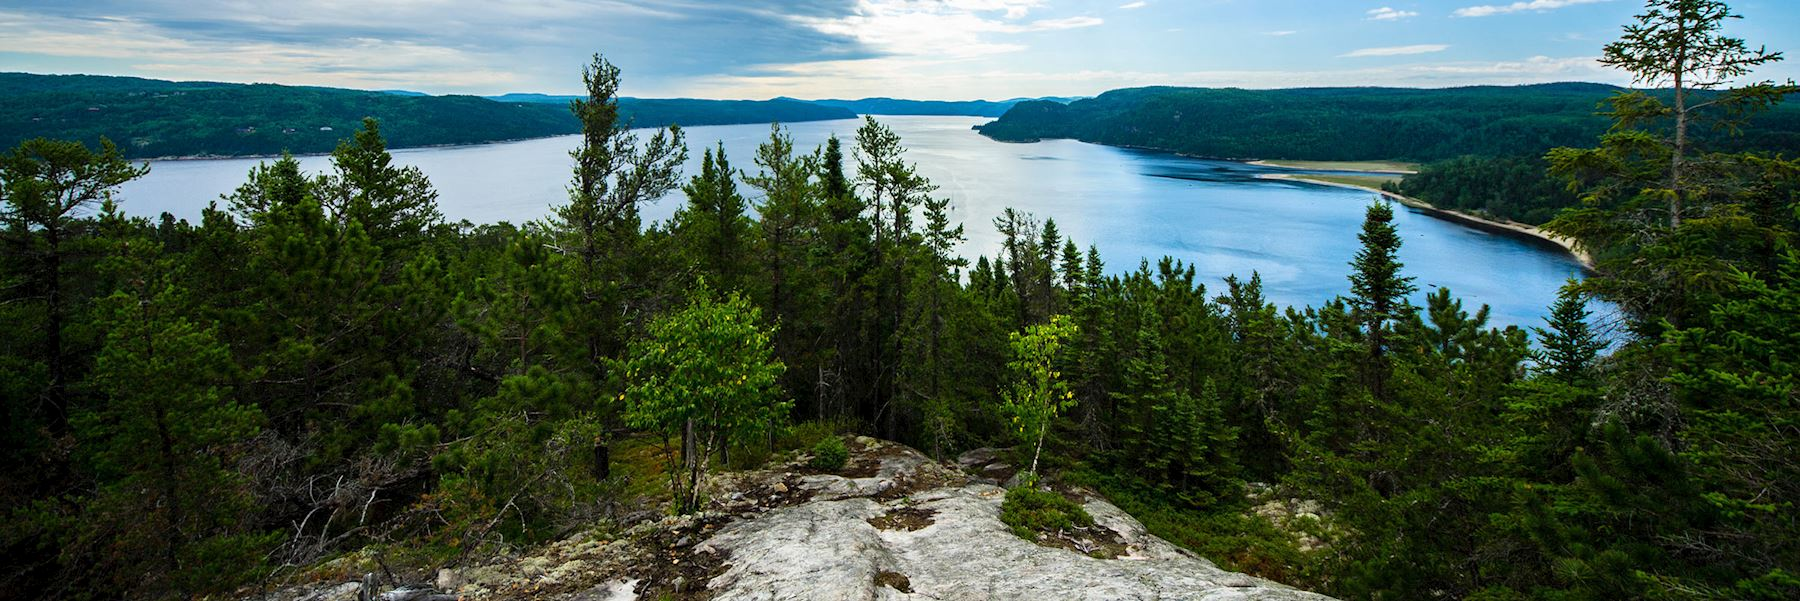 Visit Charlevoix & Saguenay - Lac St. Jean, Canada